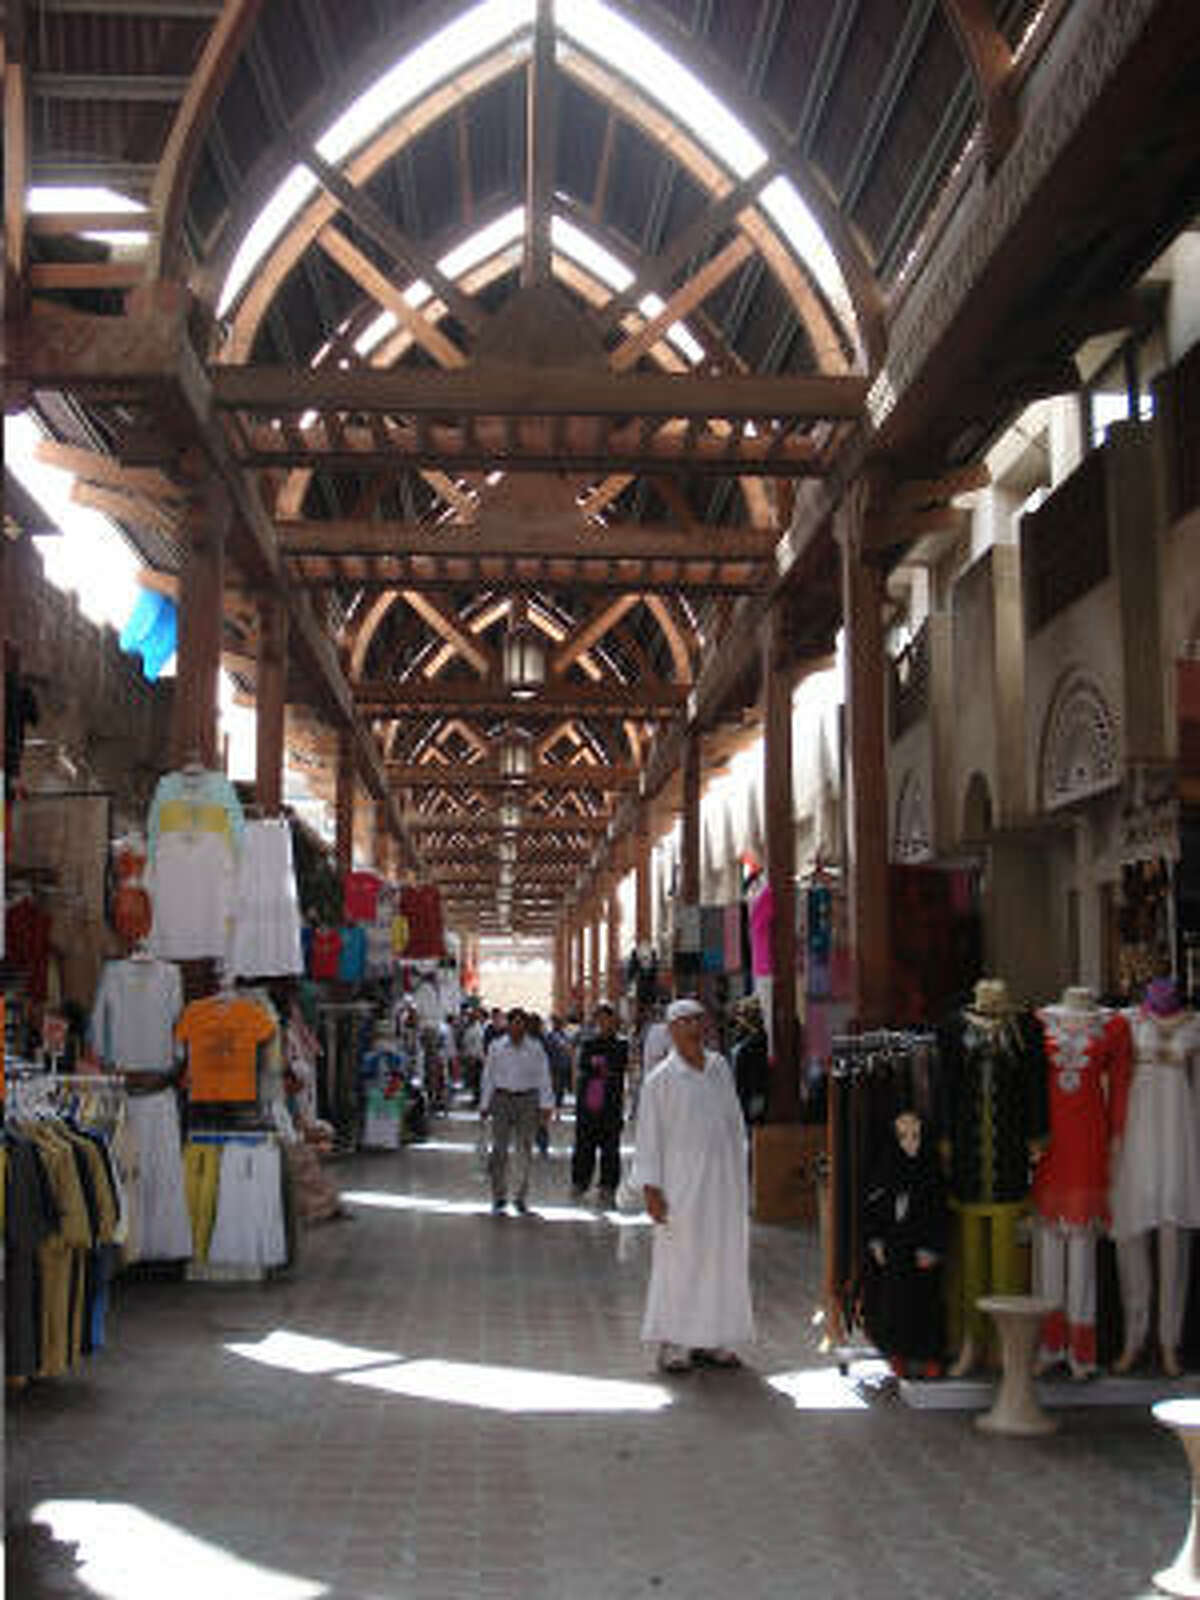 There are many souqs, or open air markets, in Dubai. This large one offered garments with an Indian flair. Back in the '60s Dubai still had no electricity, no running water and no paved roads.